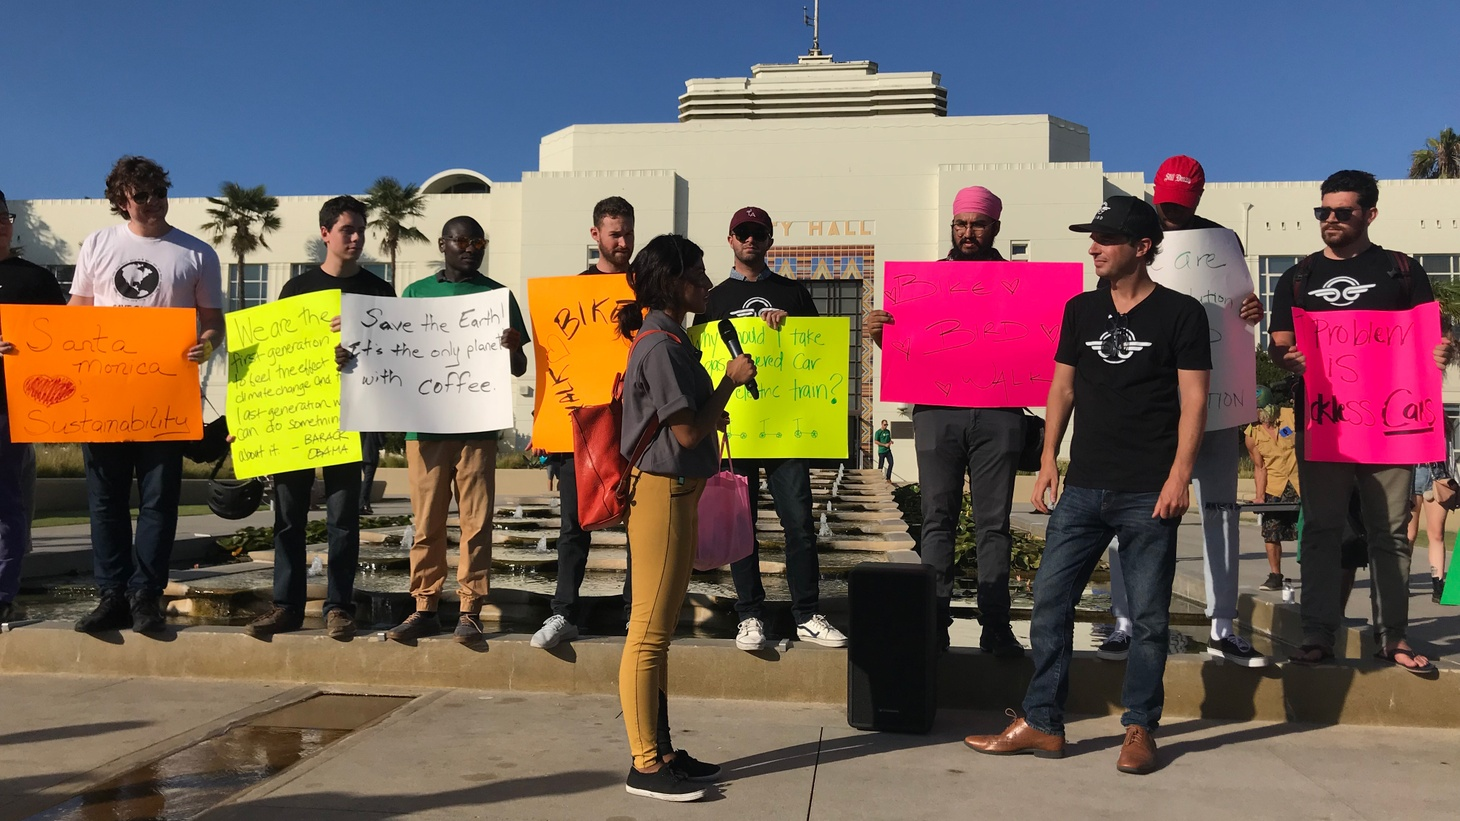 Santa Monica lawmakers are weighing a proposal that might result in taking e-scooter sharing companies Bird and Lime off the streets. The companies are fighting back and rallying their supporters.